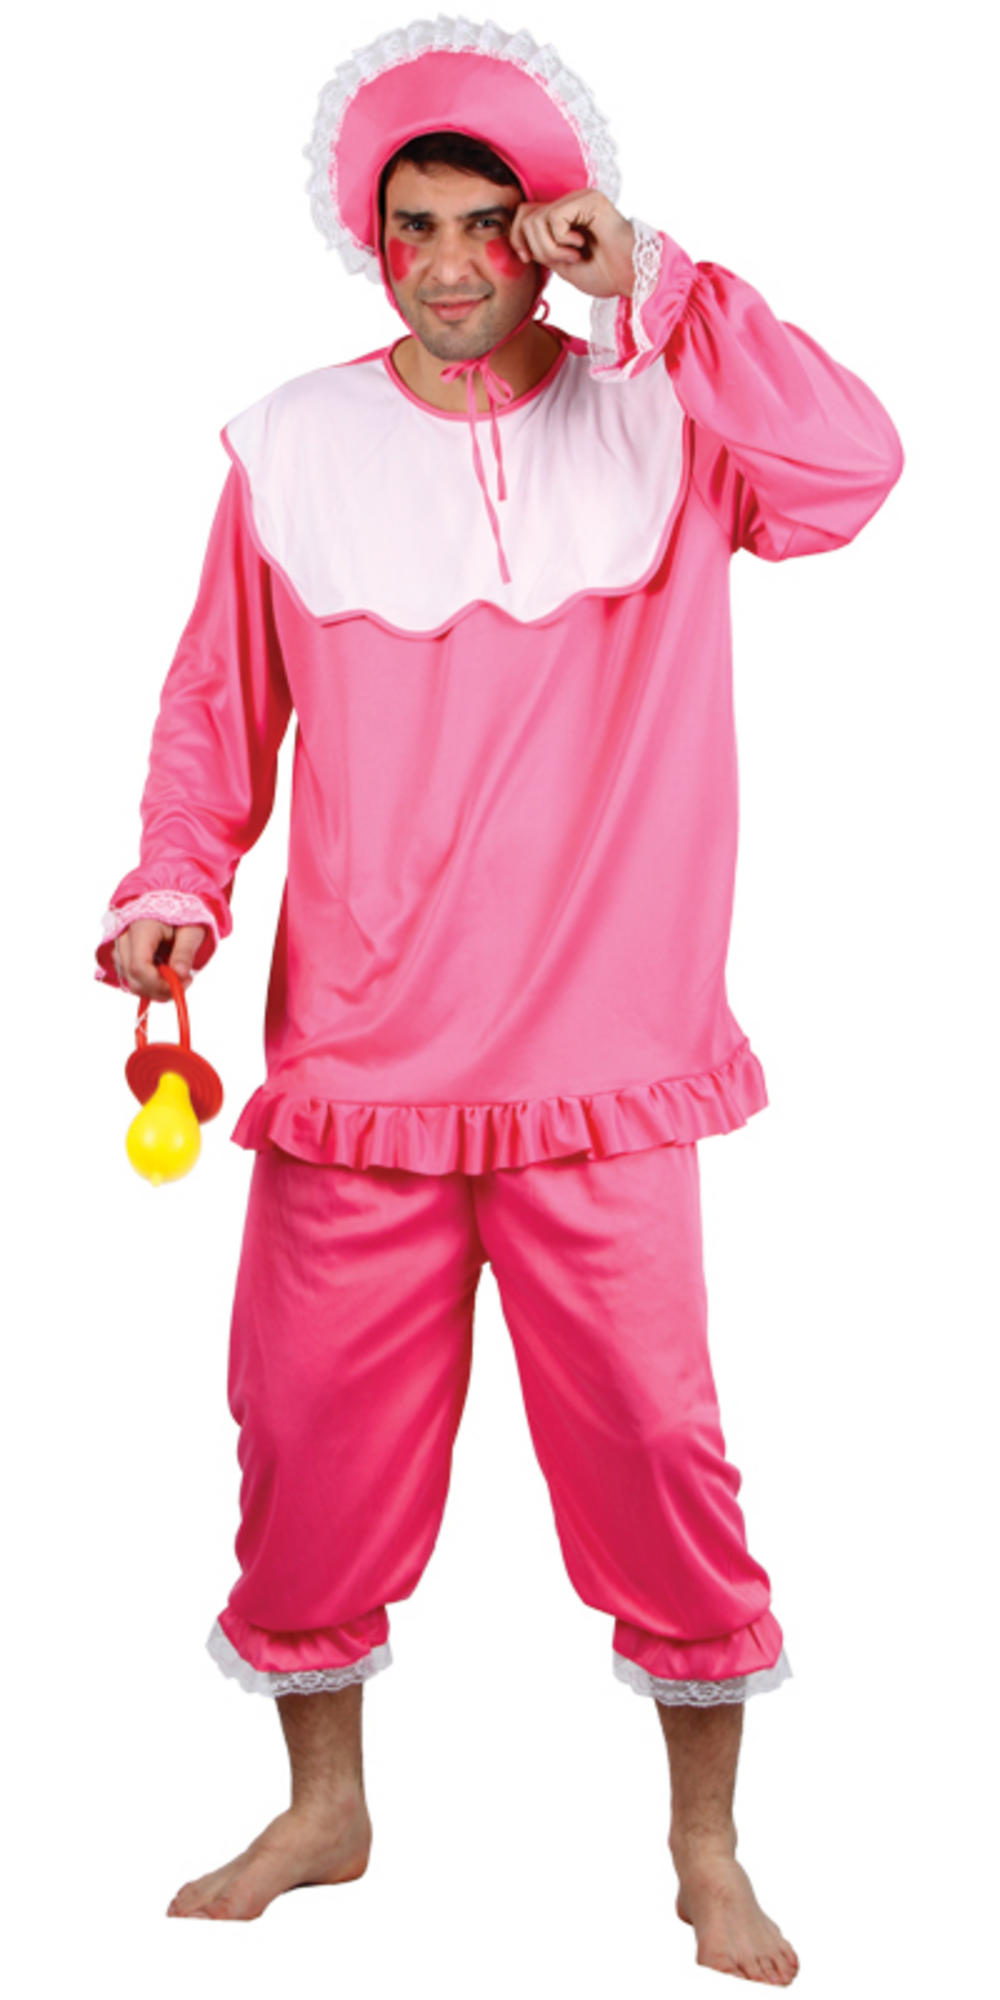 Giant Man Pink Cry Baby Suit Fancy Dress Party